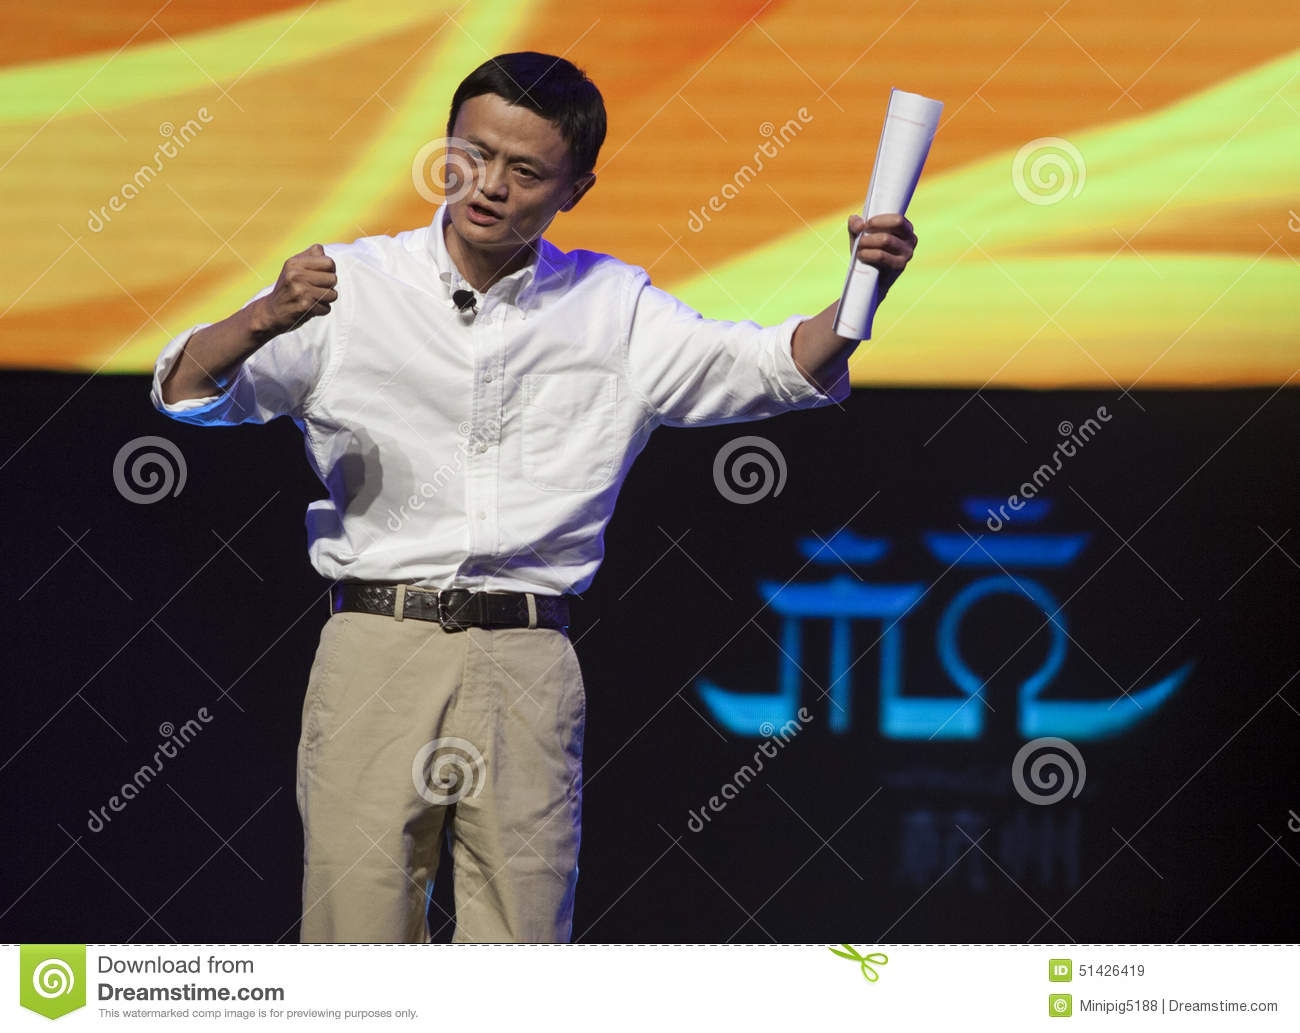 Jack Ma Of Alibaba Editorial Stock Image Image Of Company 51426419